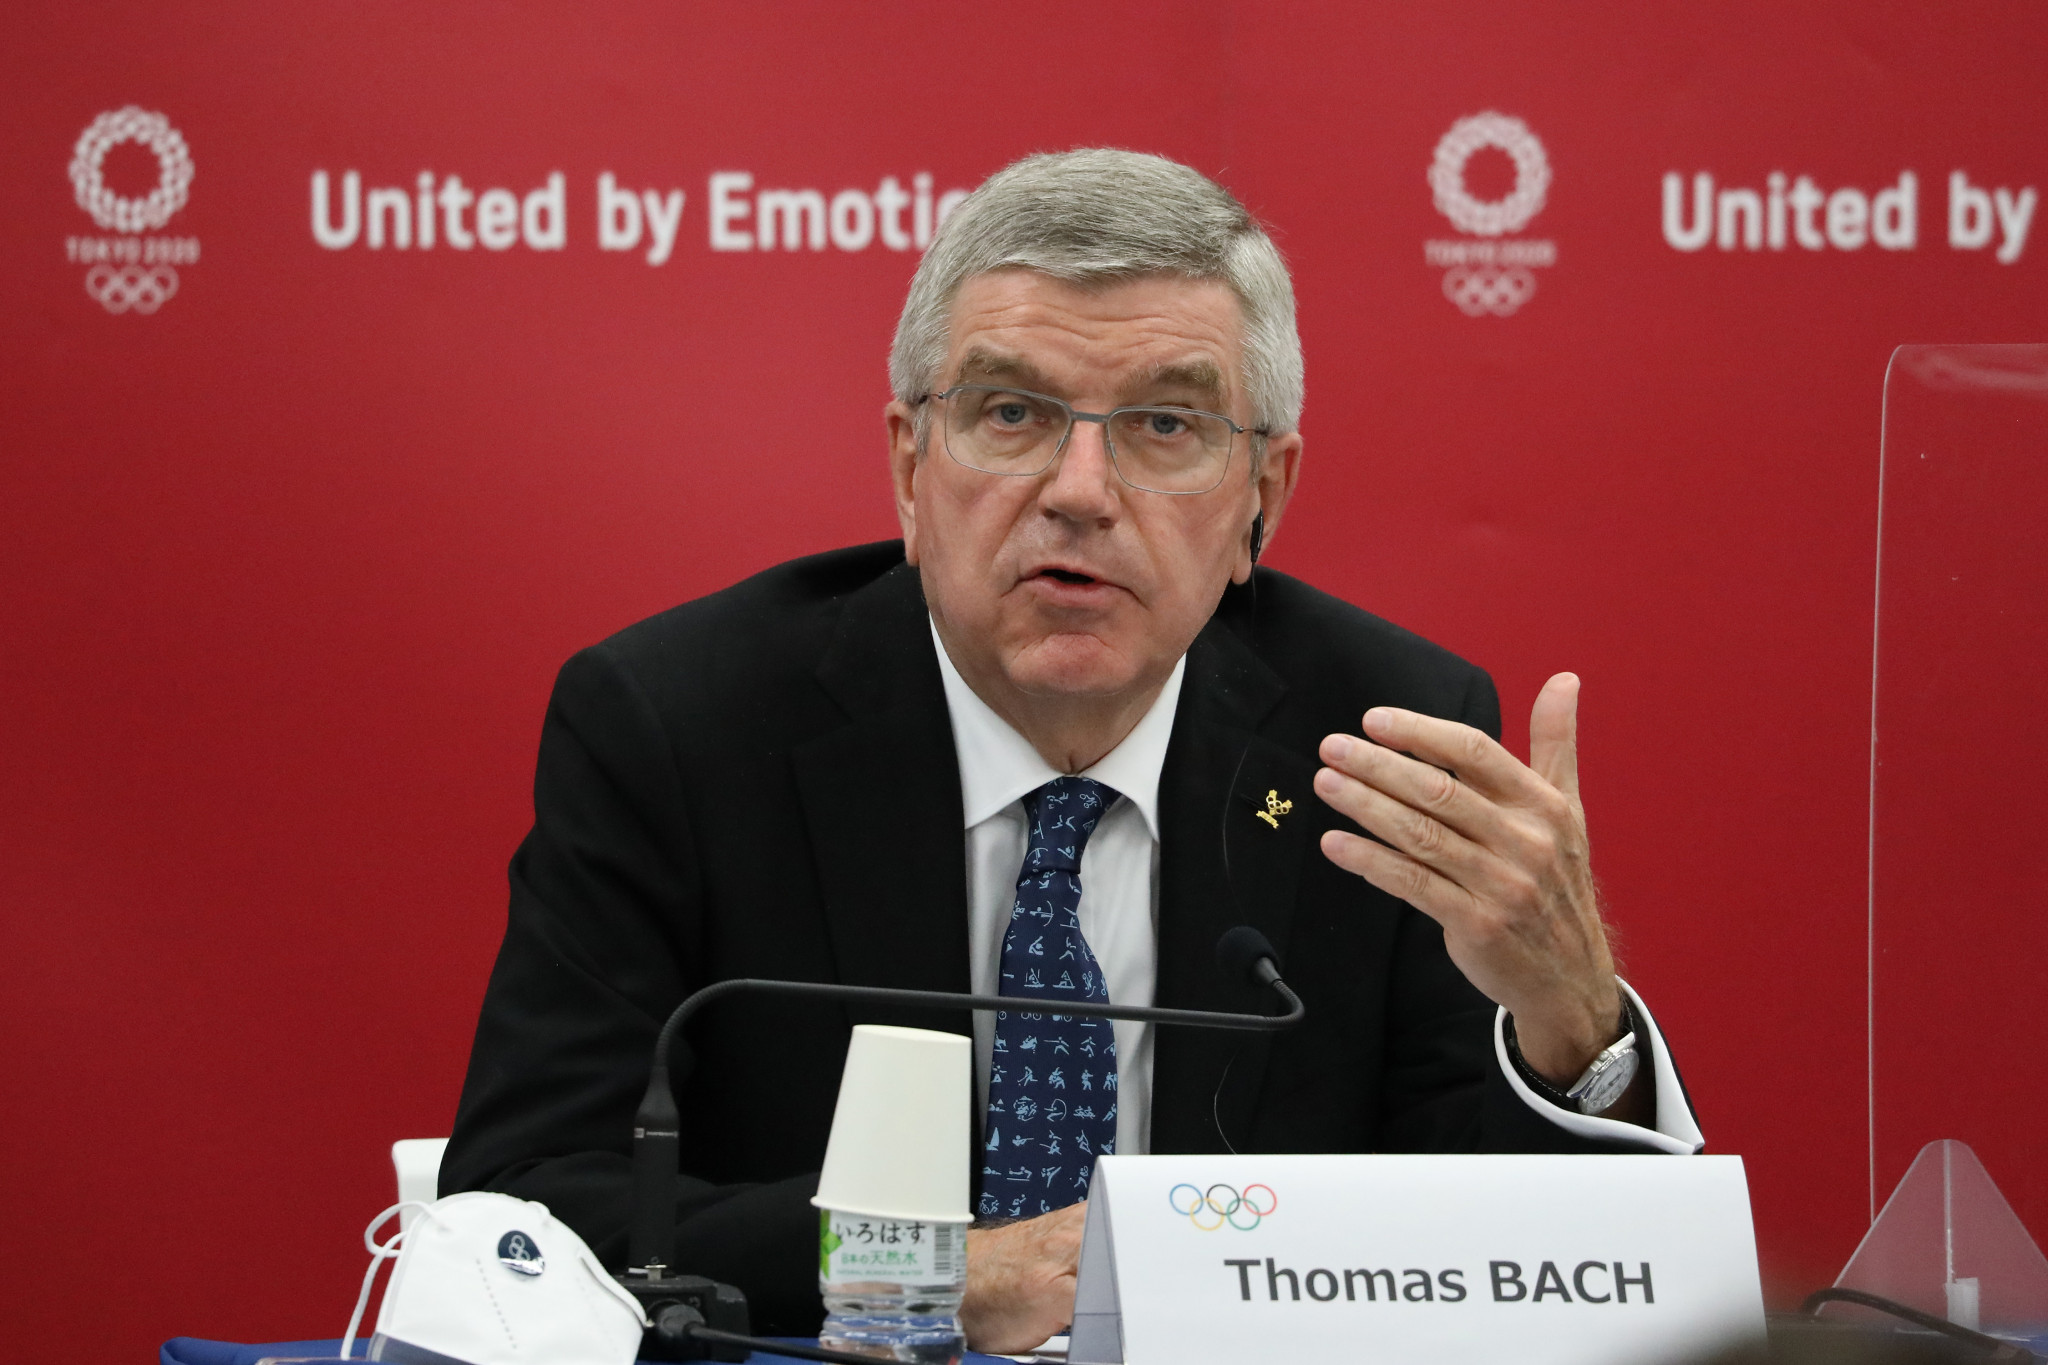 Bach set to visit Hiroshima to promote peace ahead of Tokyo 2020